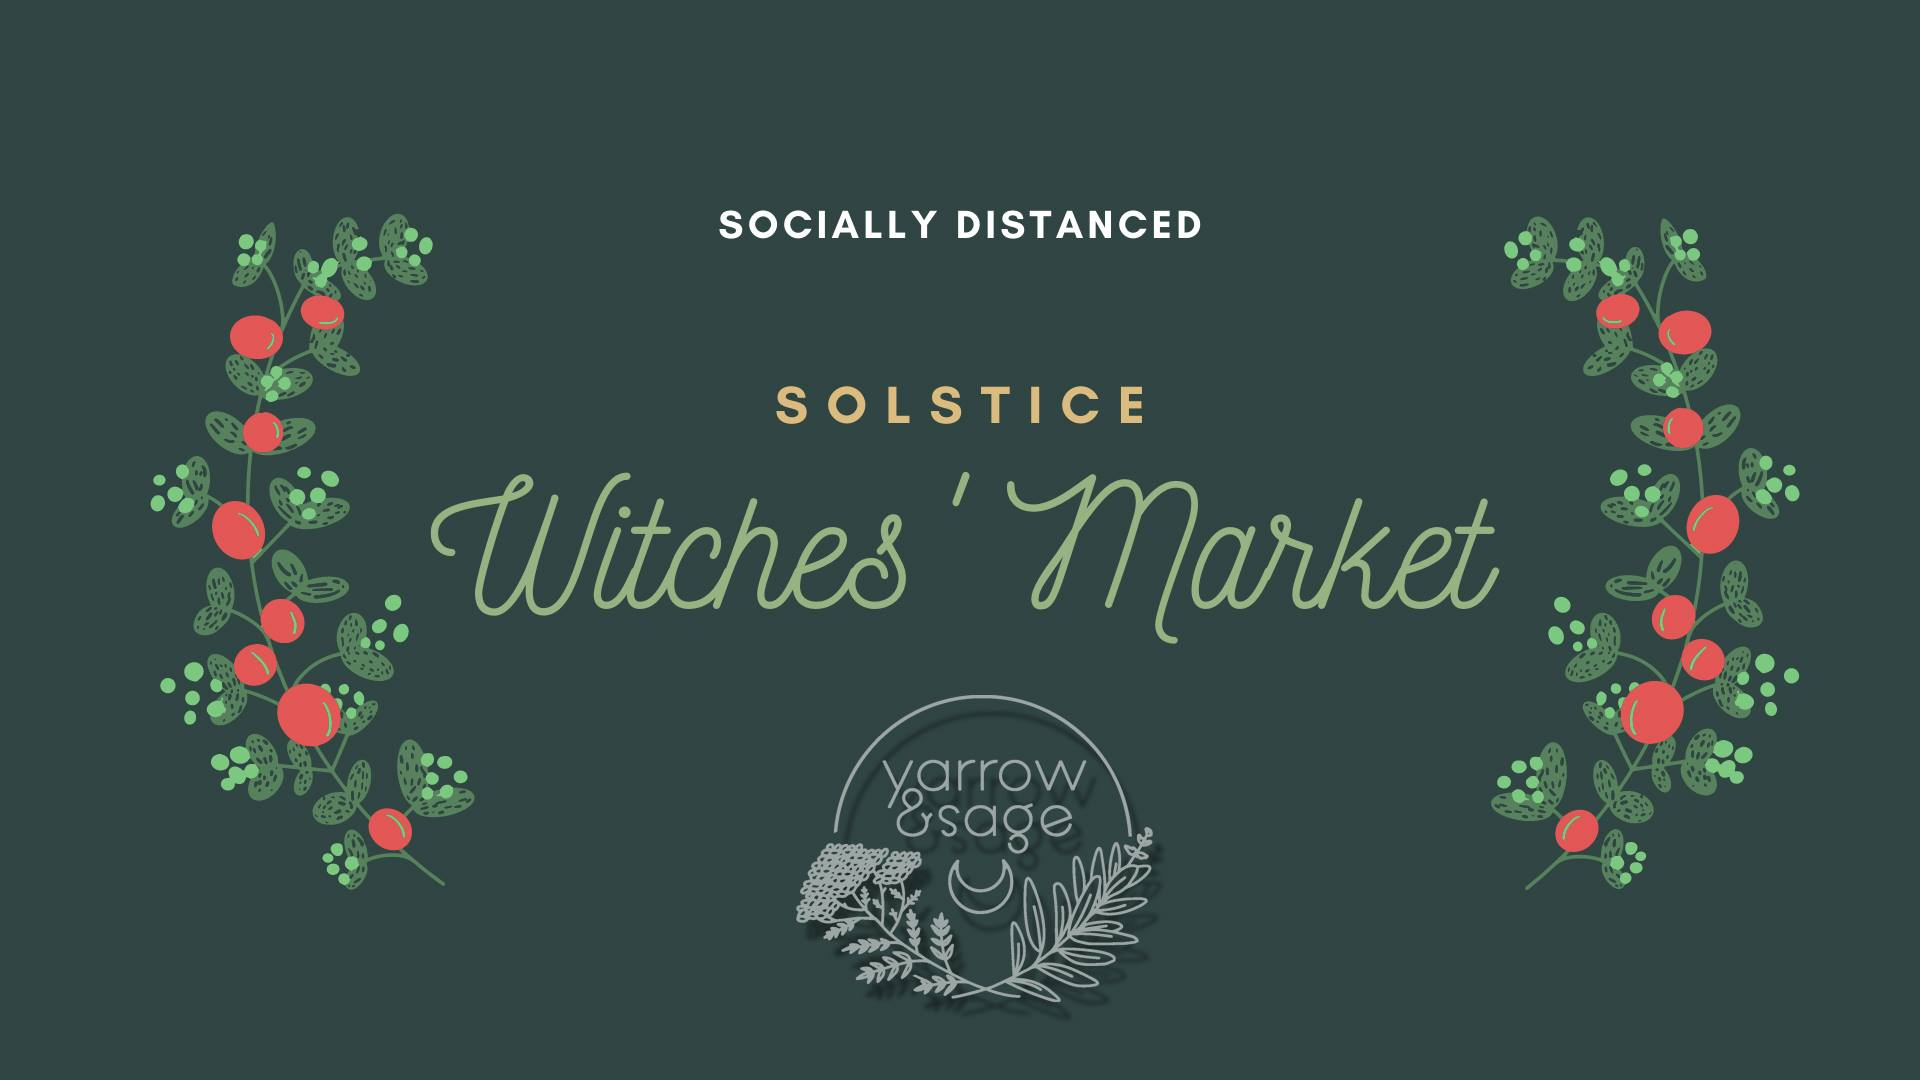 Solstice Witches' Market @ Yarrow + Sage